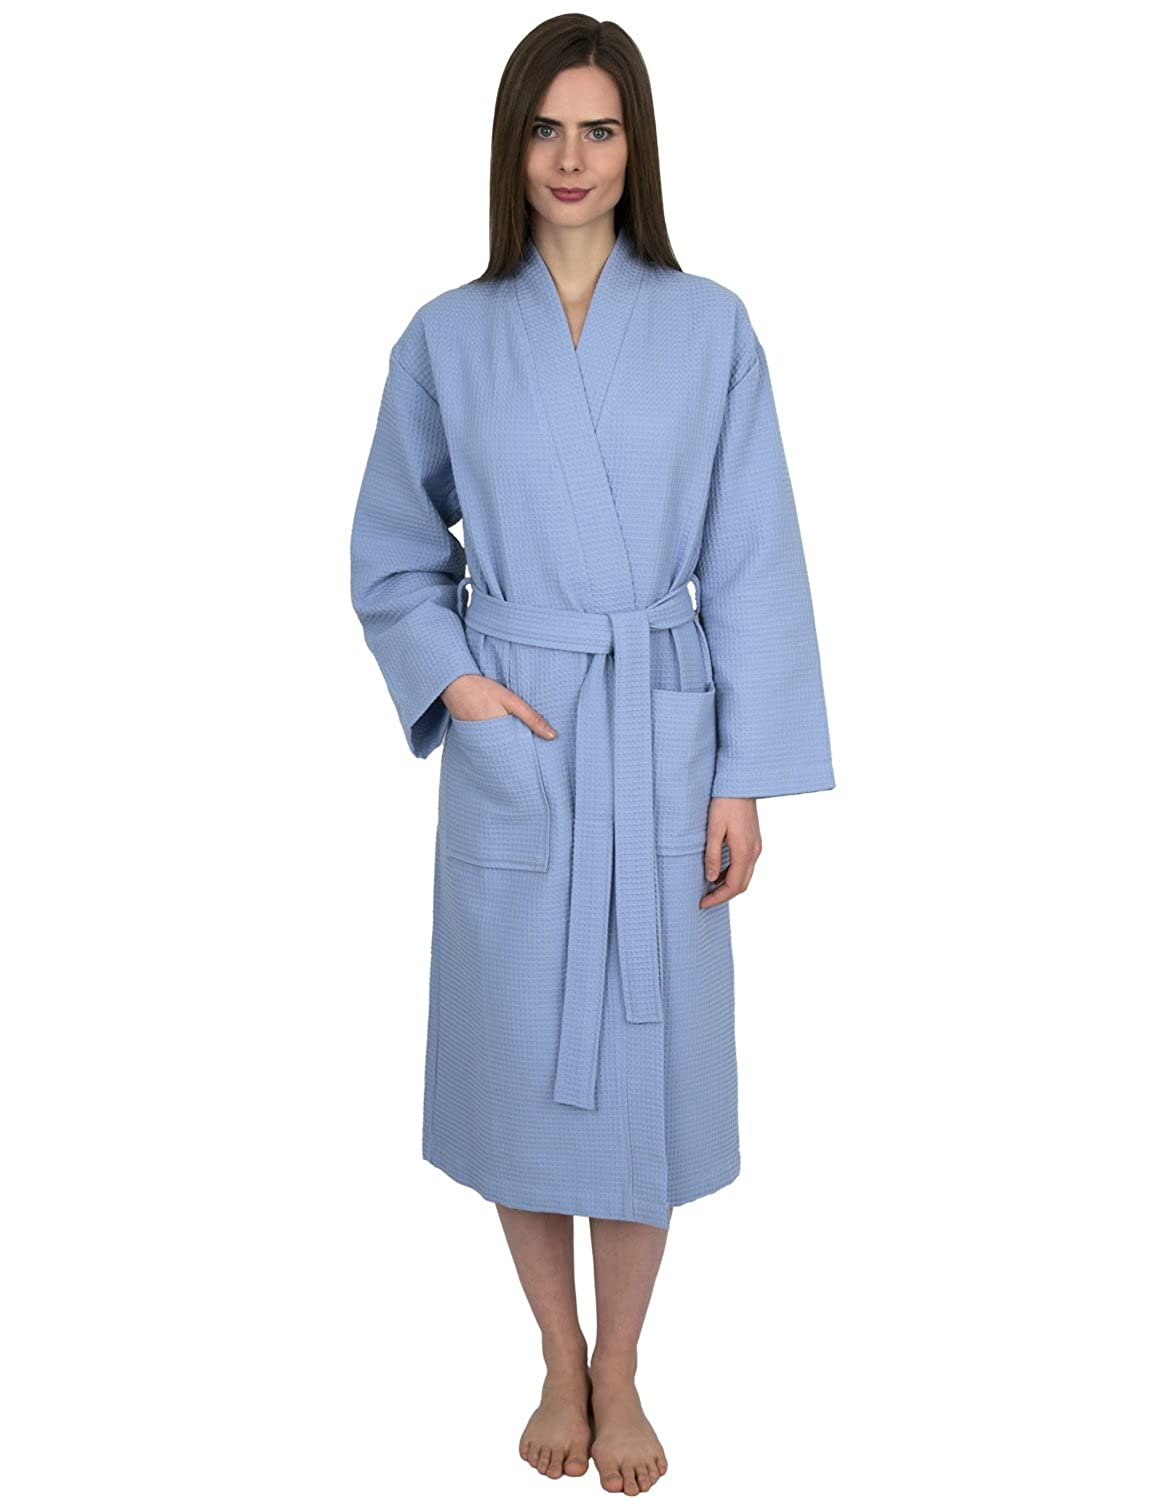 Cashmere bluee TowelSelections Waffle Weave Robe Kimono Spa Bathrobe Made in Turkey